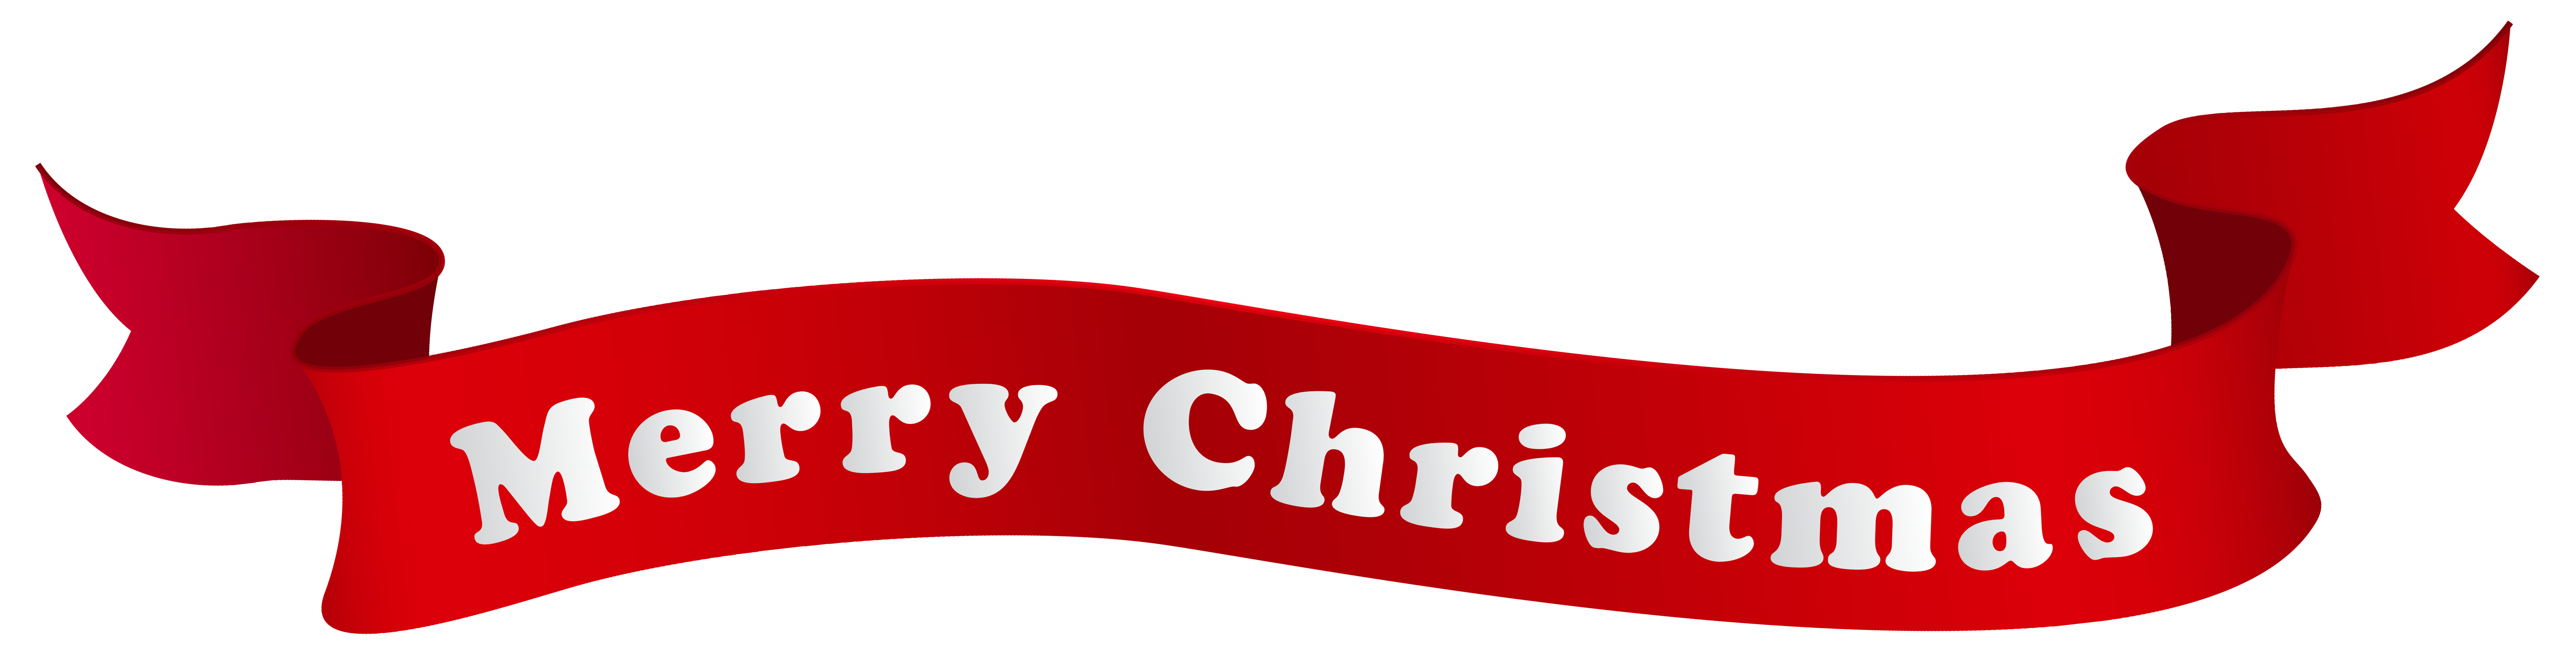 Free merry christmas clipart picture transparent download Merry Christmas Banner Clipart | cyberuse picture transparent download